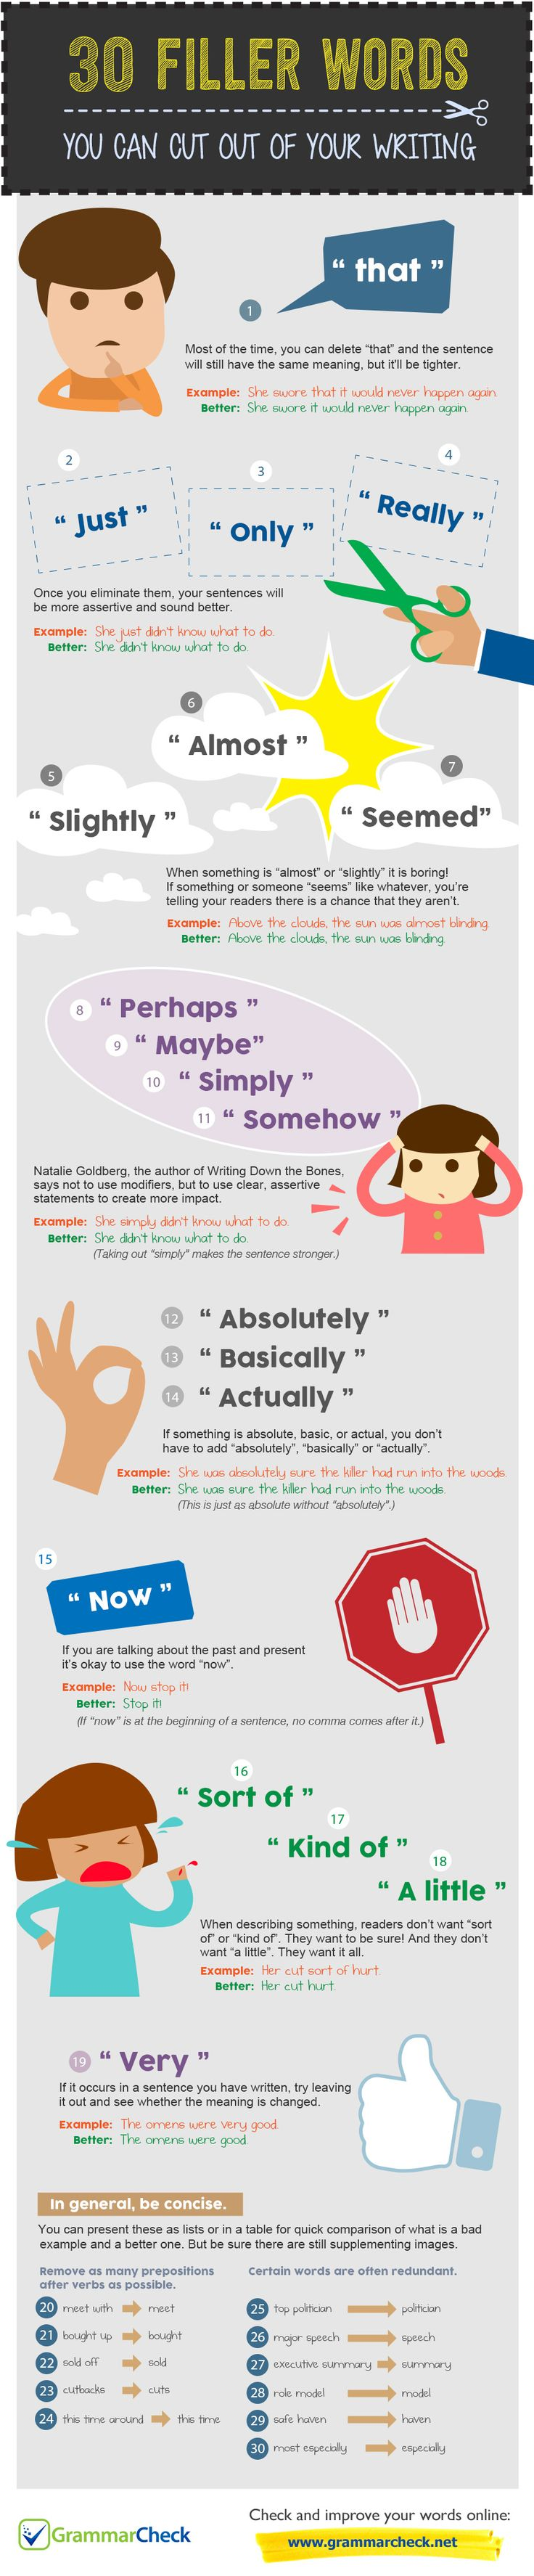 30 Filler Words To Cut Out Of Your Writing (Infographic) – Writers Write